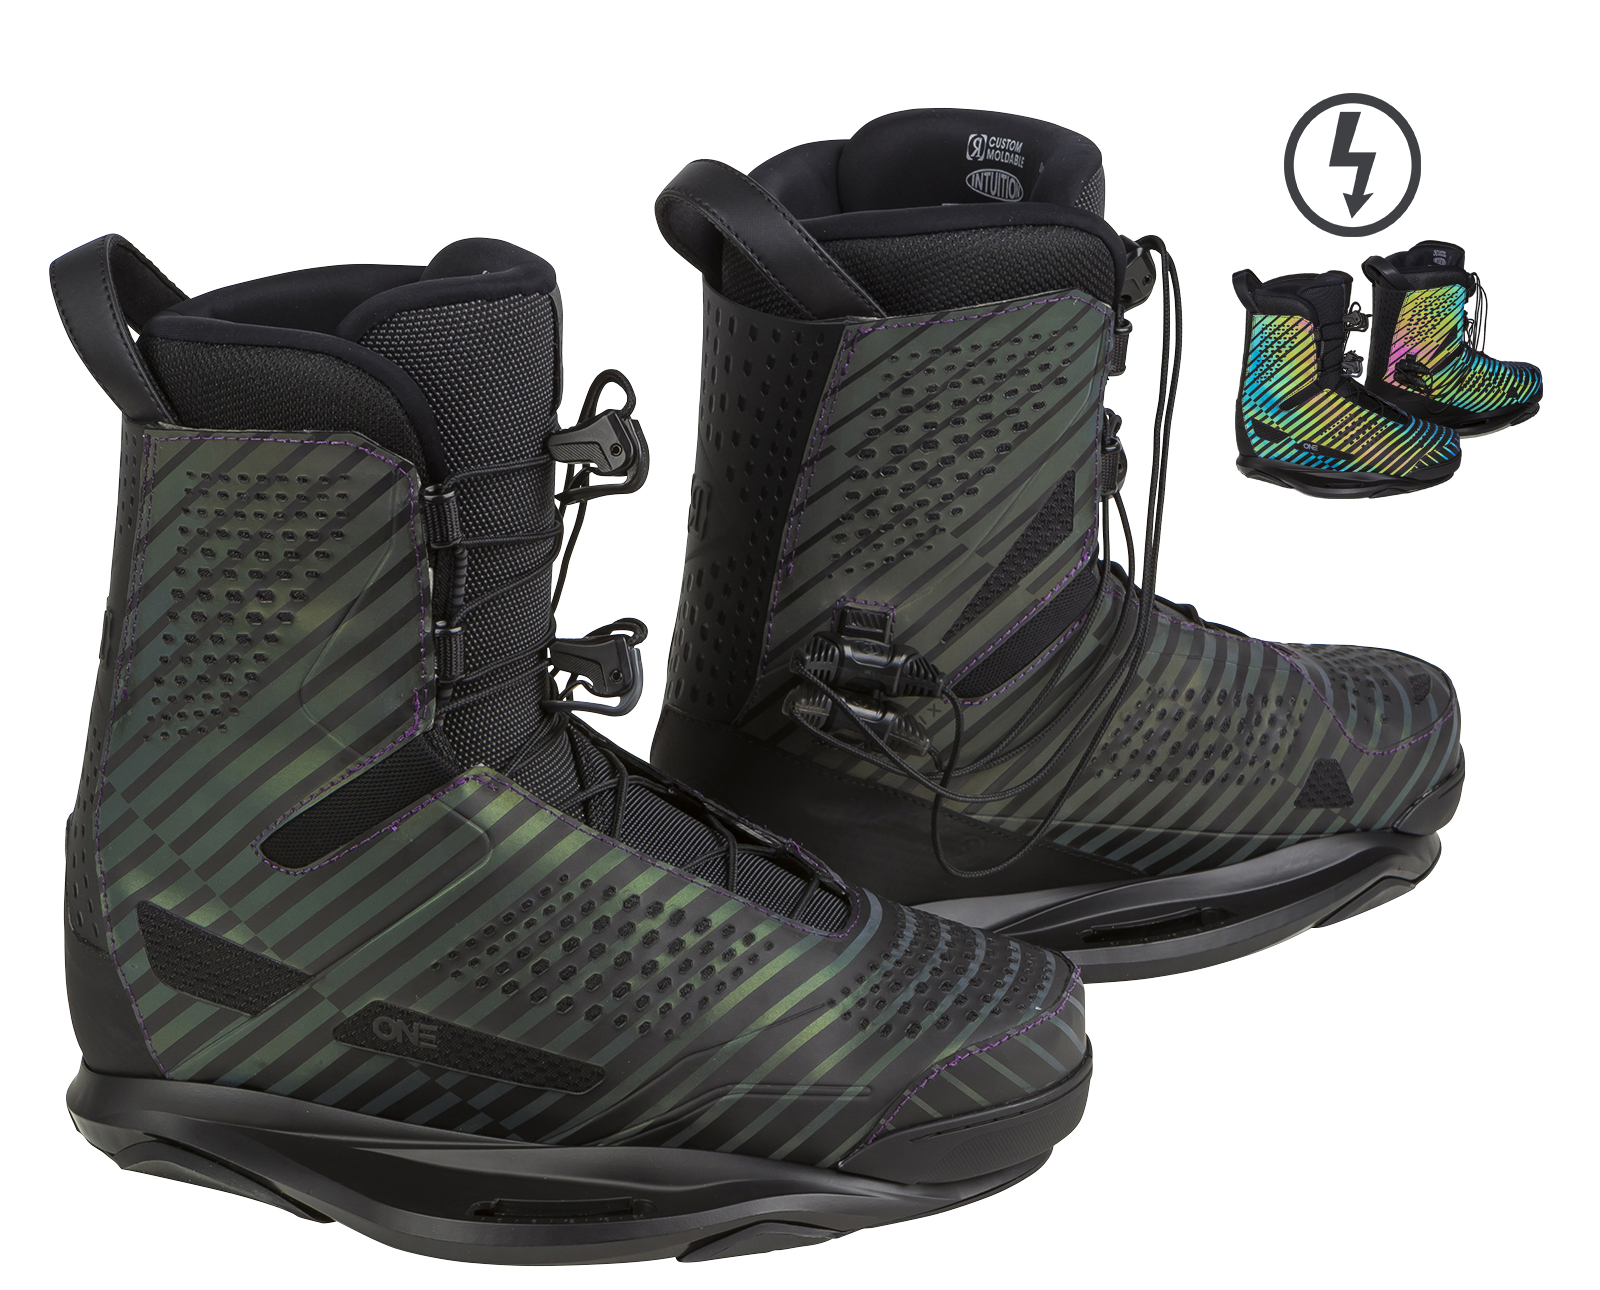 ONE BOOT POLAR FLASH RONIX 2017